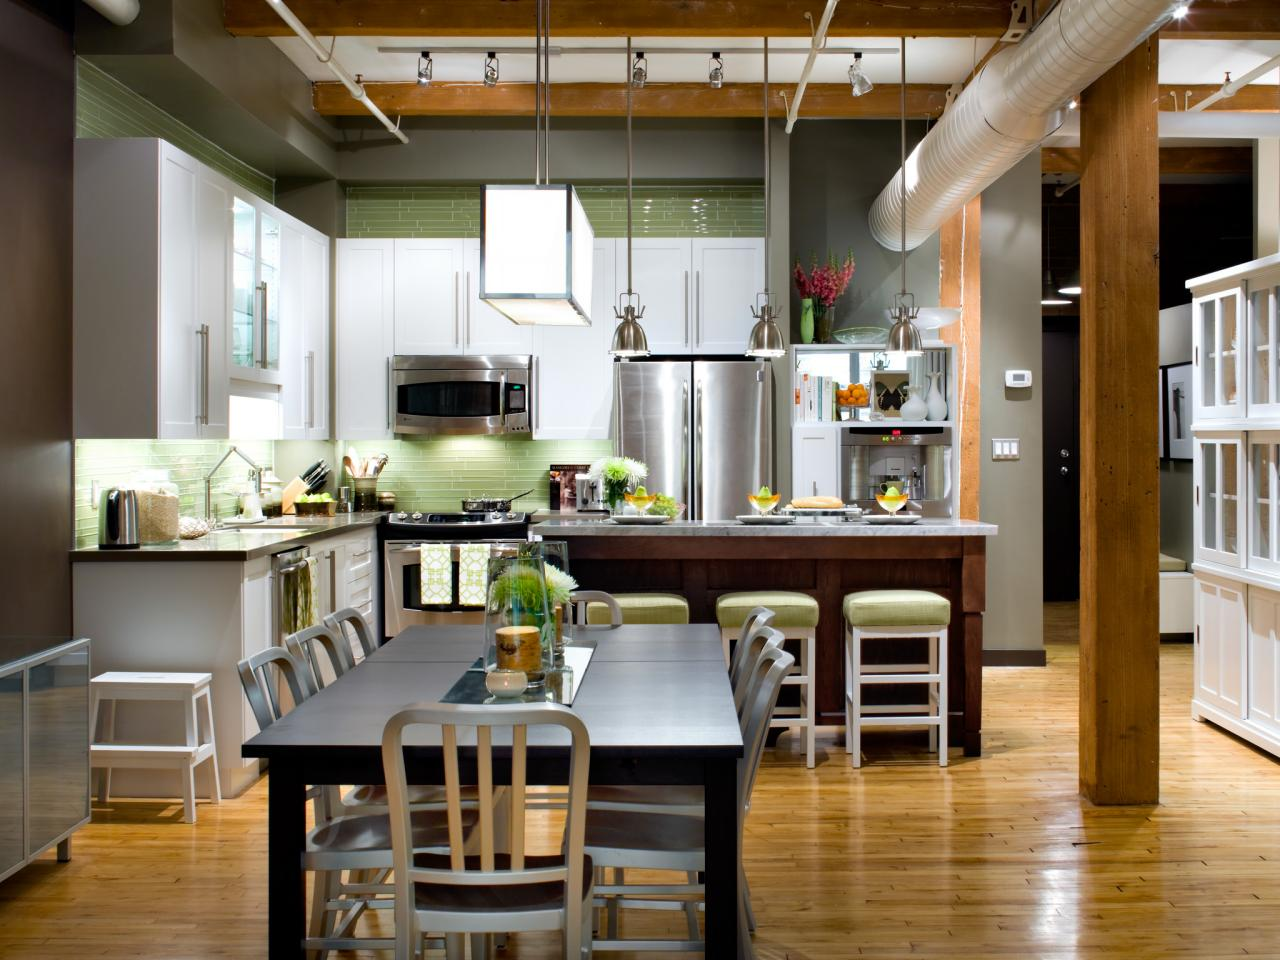 Kitchen Ideas L Shaped l-shaped kitchen design: pictures, ideas & tips from hgtv | hgtv